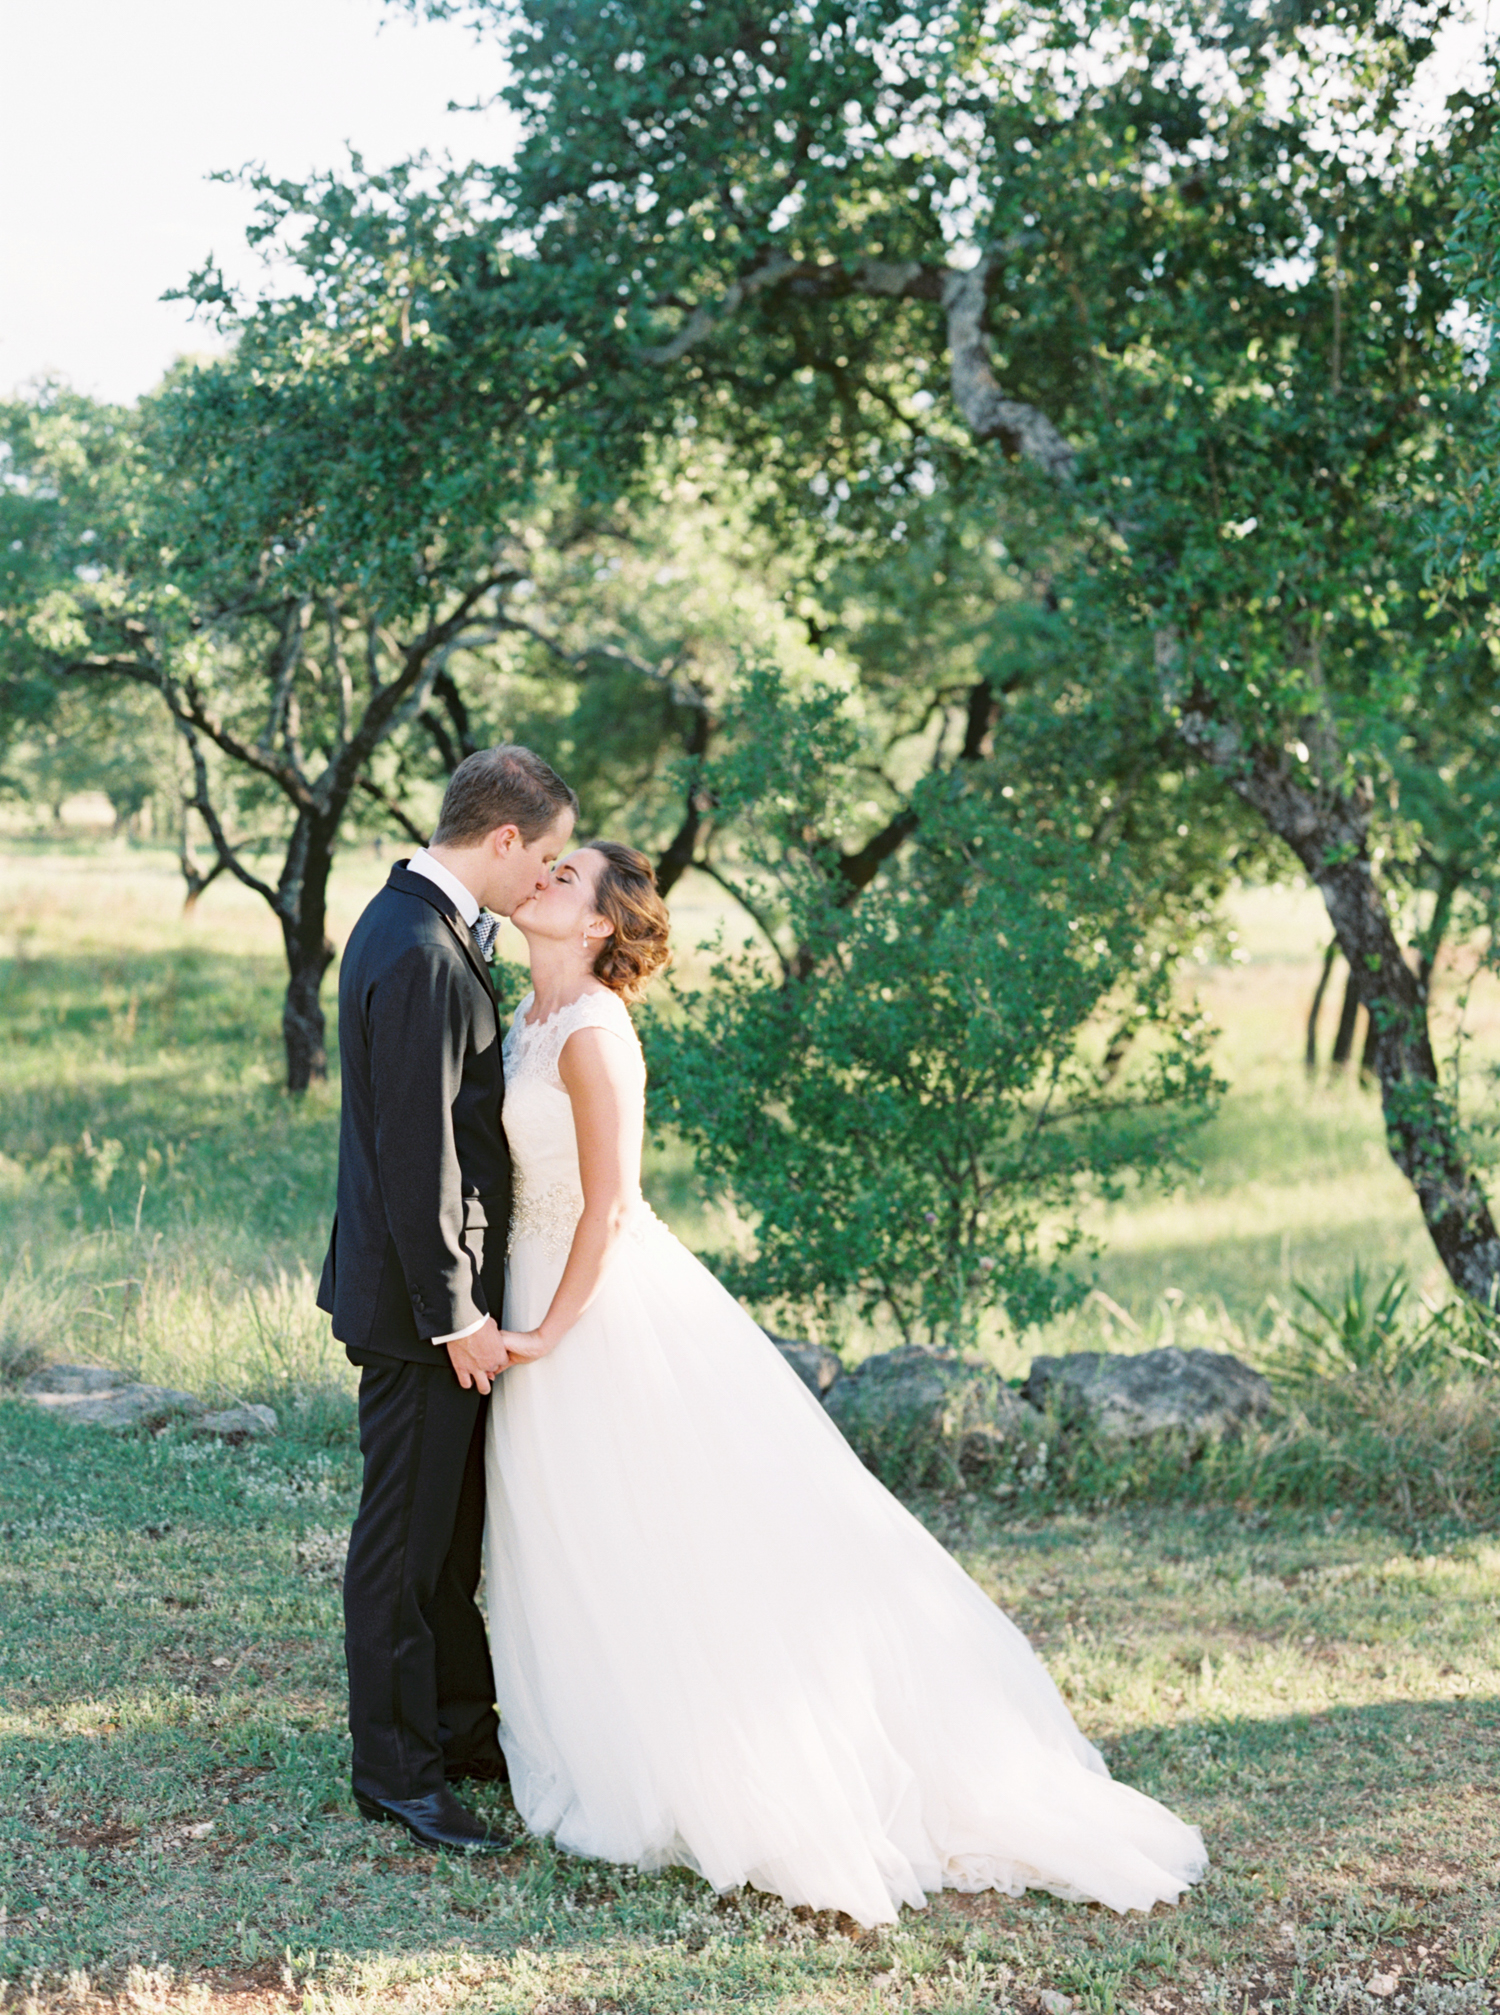 AUSTIN WEDDING PHOTOGRAPHER PHOTO-87.jpg